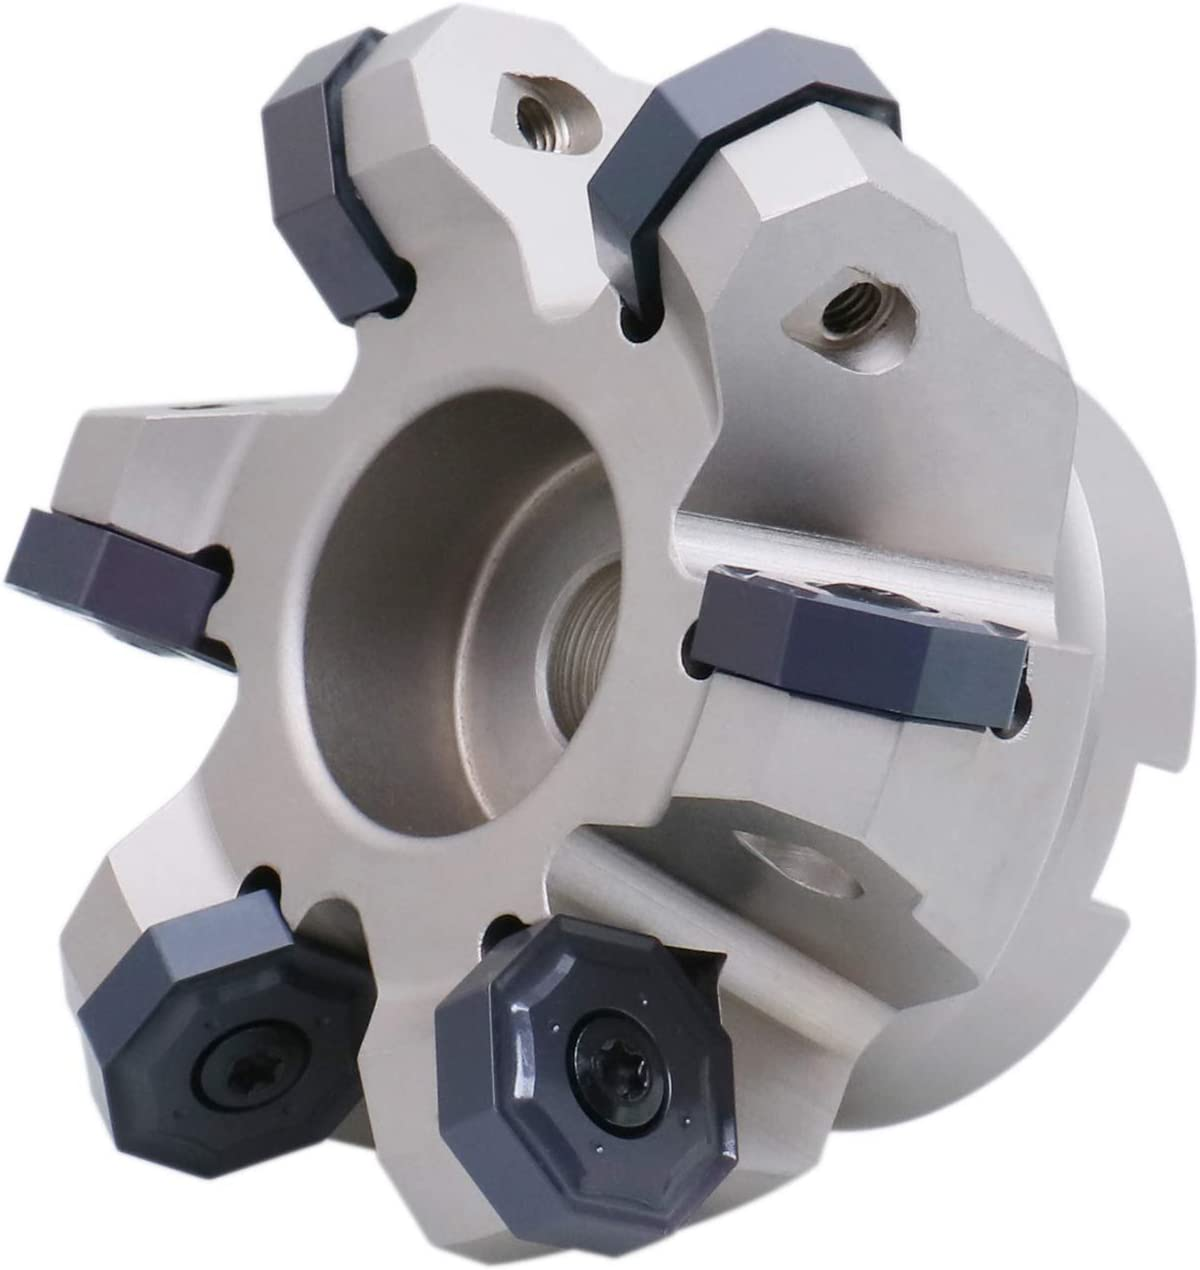 3300-1629 with Onhu0800608 Insert Accusize Industrial Tools 45 Degree Indexable Face Mill for Octagonal Double Side 16 Cutting Edge Insert